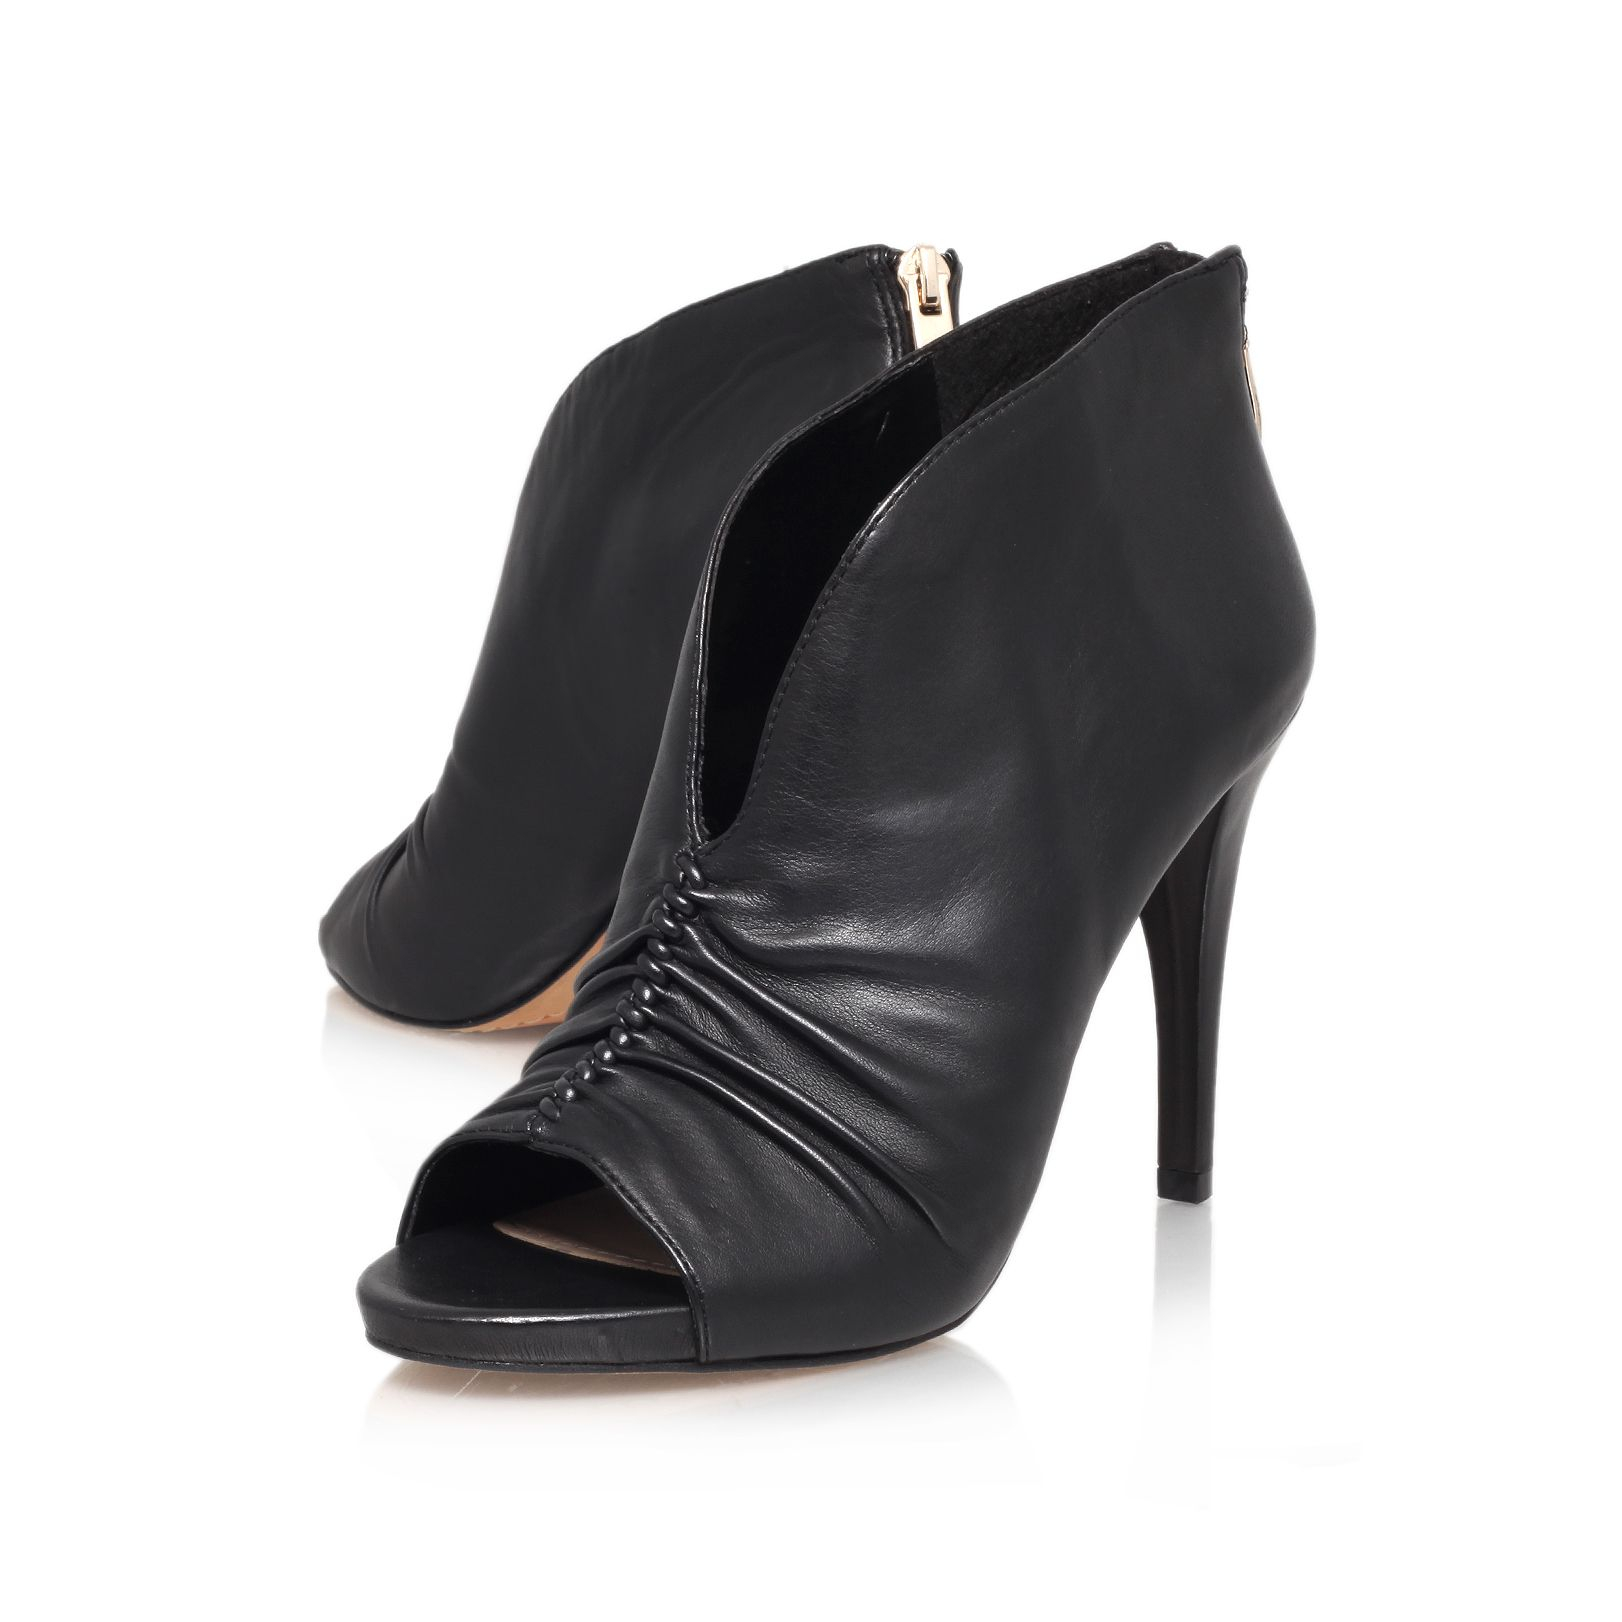 Vince Chateau Camuto METSEYA Shoe Women's A focus on effect size estimation has other benefits. Once researchers routinely attend to effect sizes, there is likely to be a desire for effect size estimates that are more precise (i.e., have narrower confidence intervals) and to test theoretical models that generate risky hypotheses, using a.